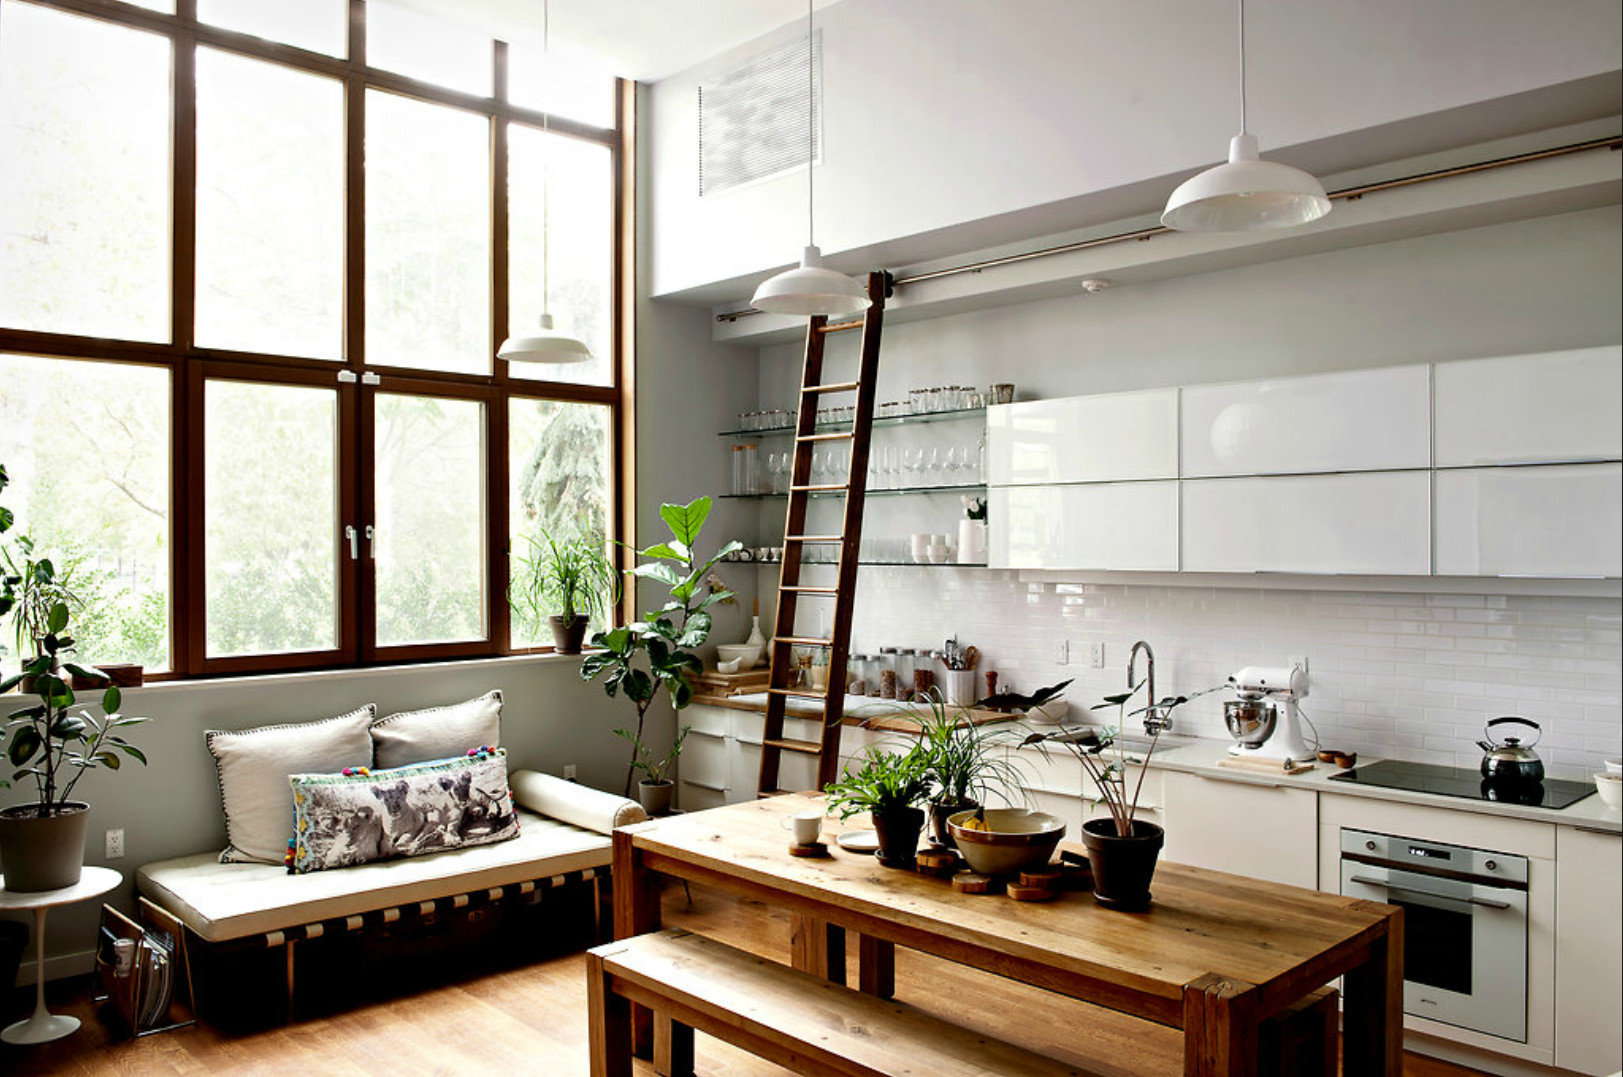 Un appartement d 39 artiste new york planete deco a homes for Morning kitchen ideas